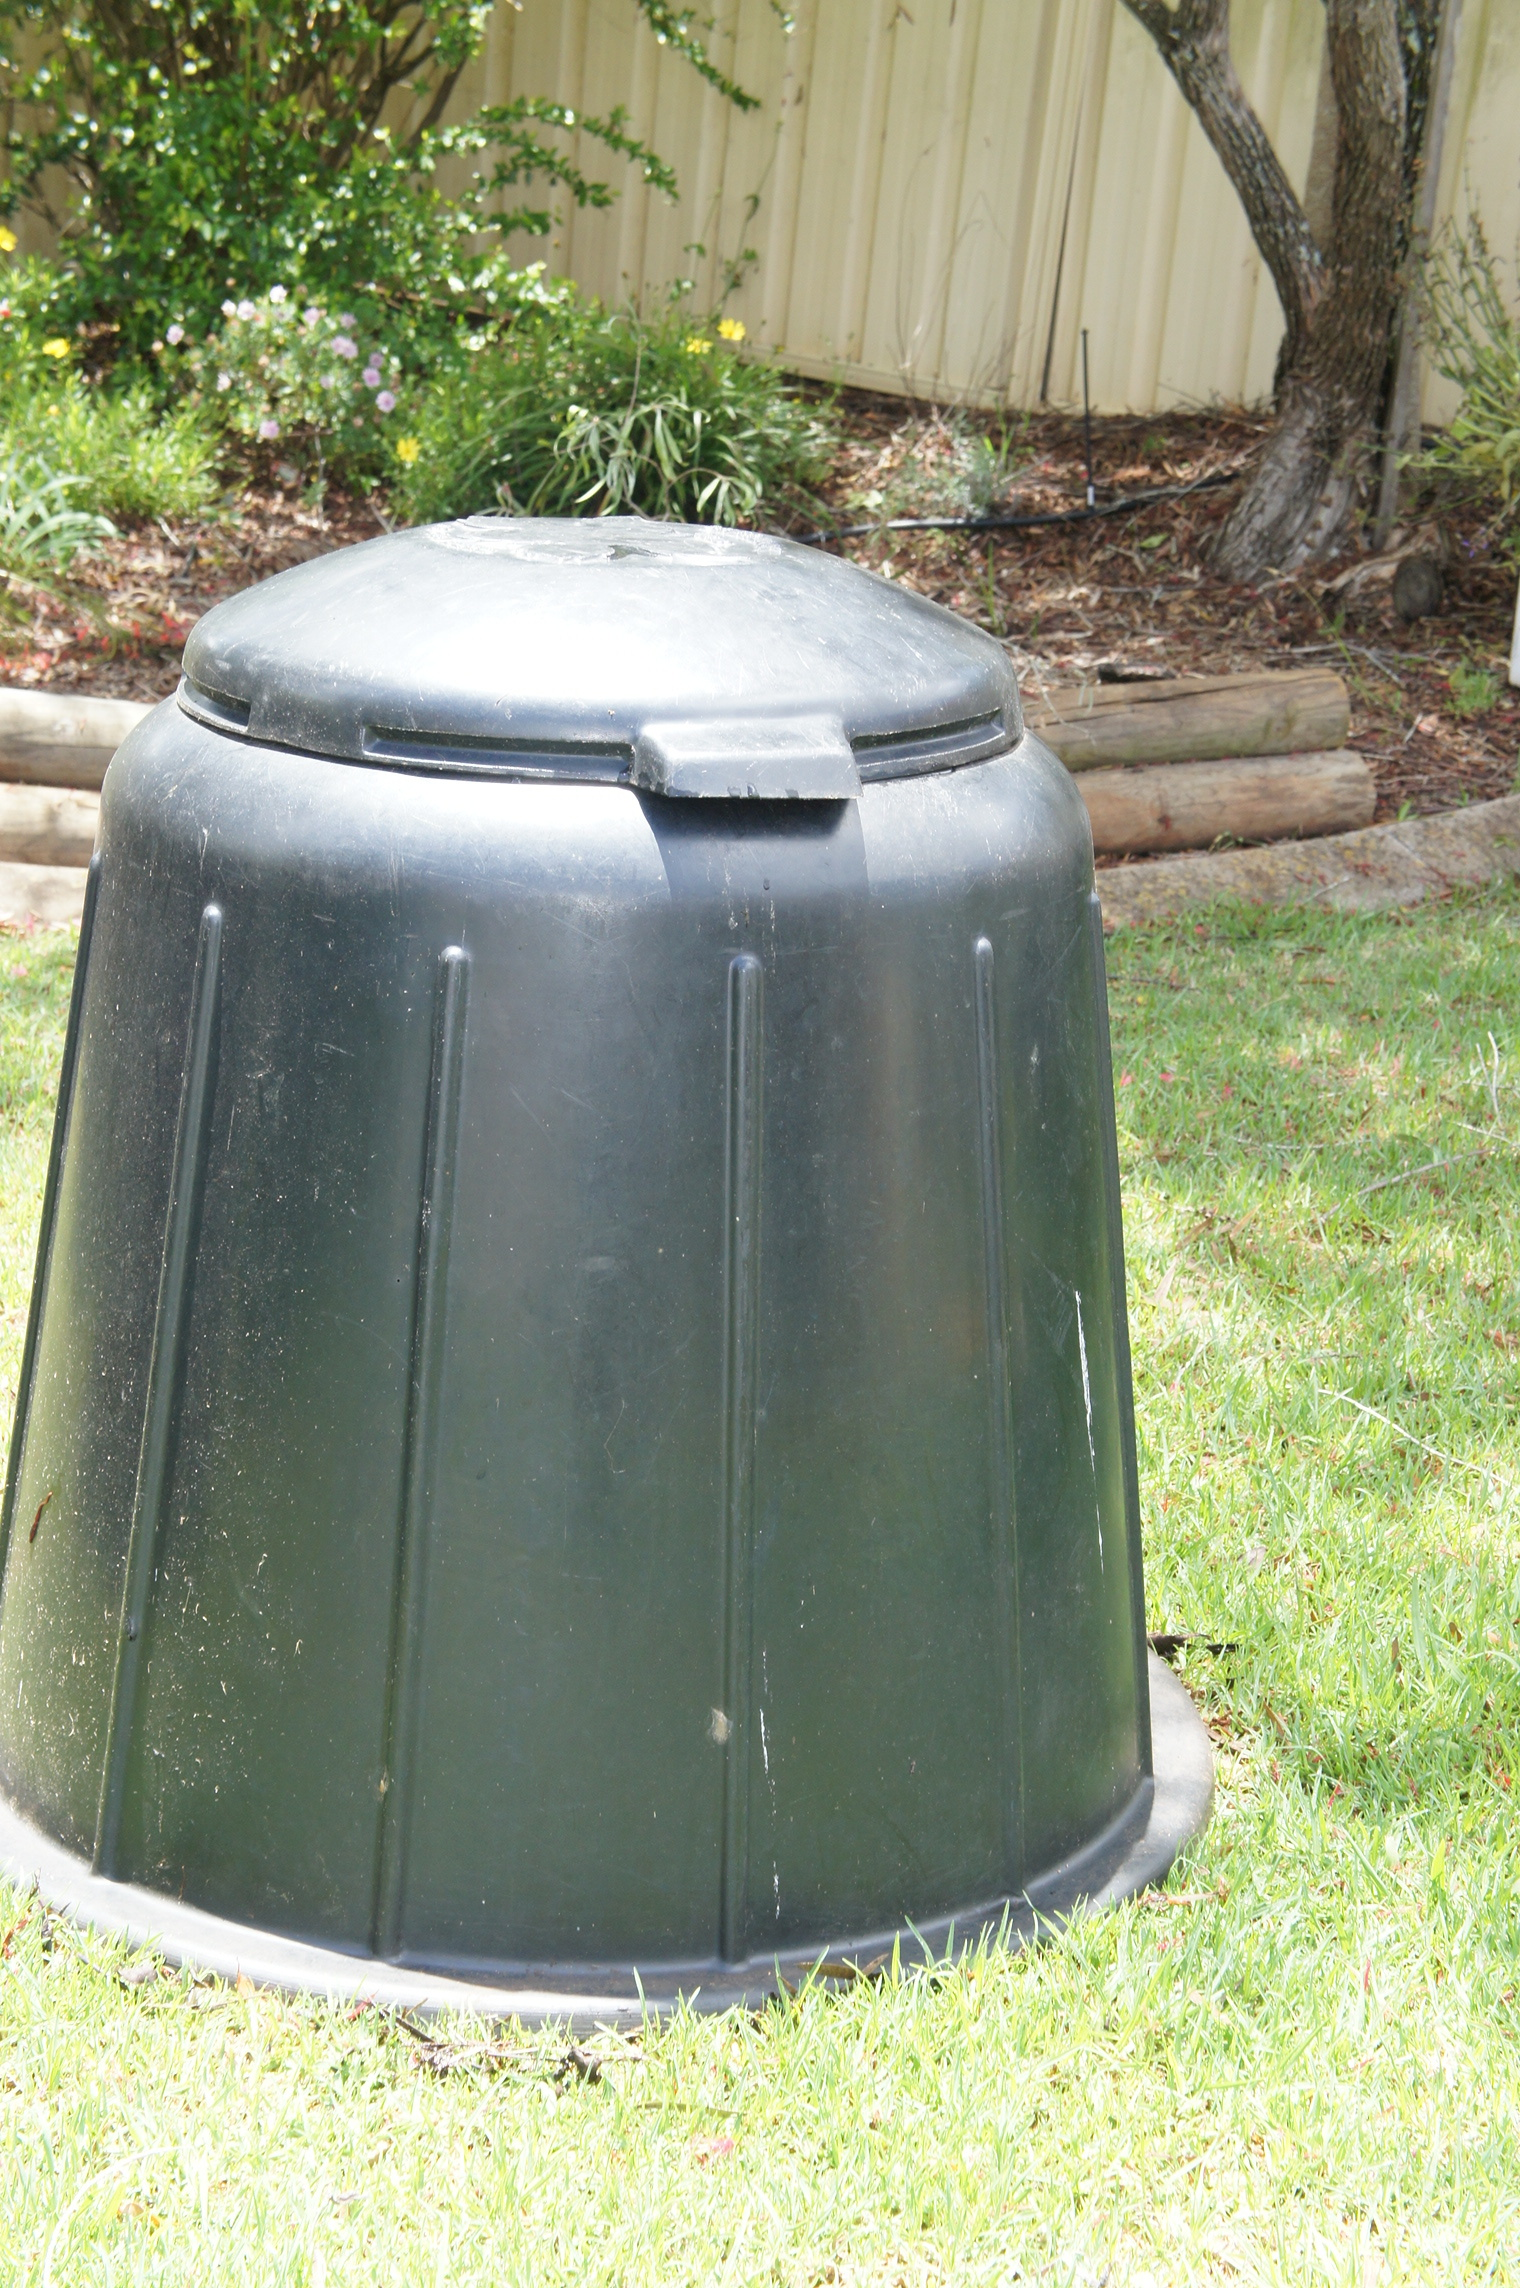 Compost Bin in very good condition for sale. Call Andrea 0448 246 369.